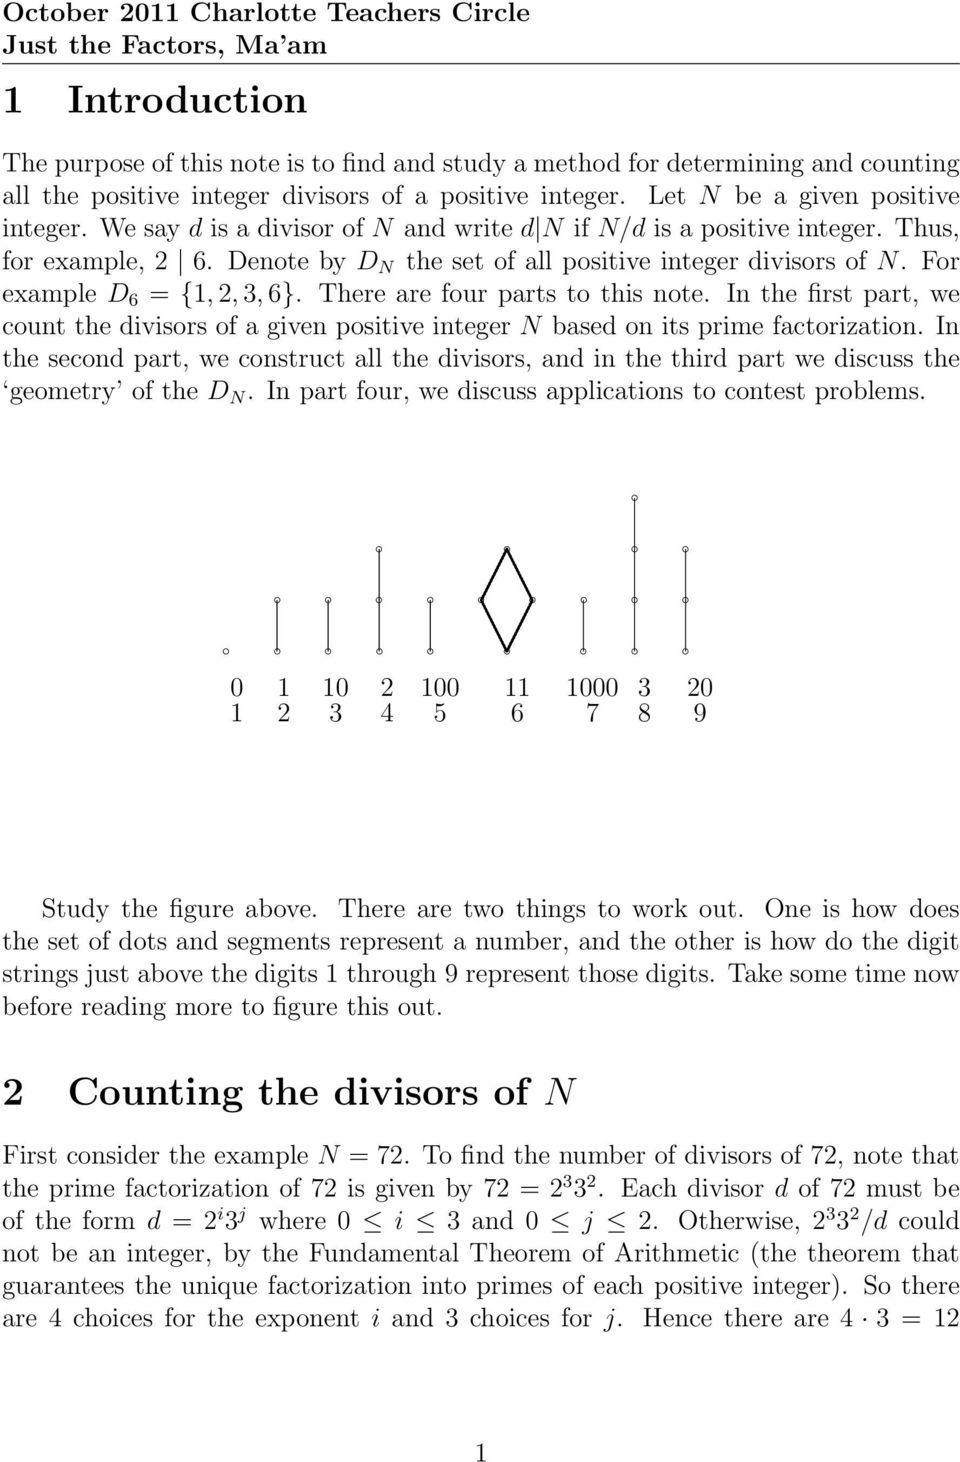 note In the first part, we count the divisors of a given positive integer N based on its prime factorization In the second part, we construct all the divisors, and in the third part we discuss the